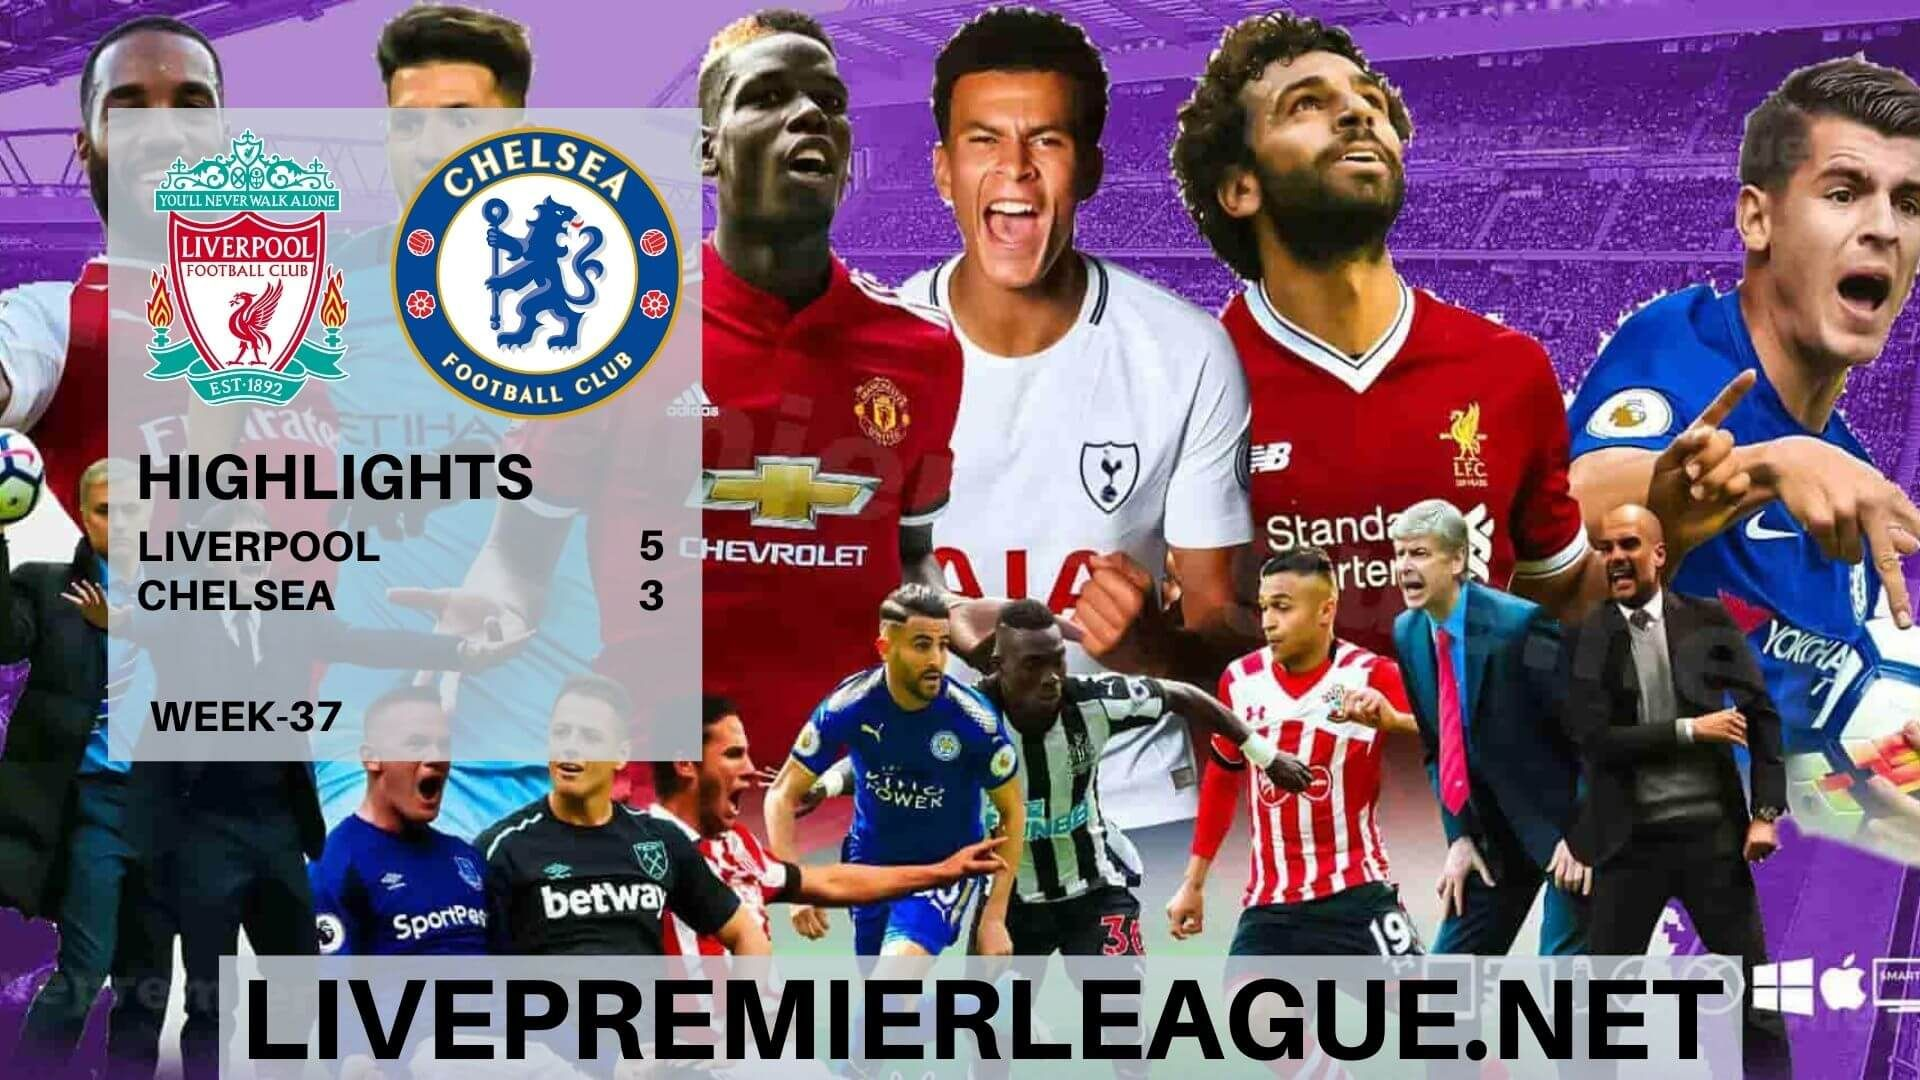 Liverpool Vs Chelsea Highlights English Premier League Week 37 On Thursday 23rd July 2020 At Anfield In 2020 English Premier League Norwich City Liverpool Vs Chelsea